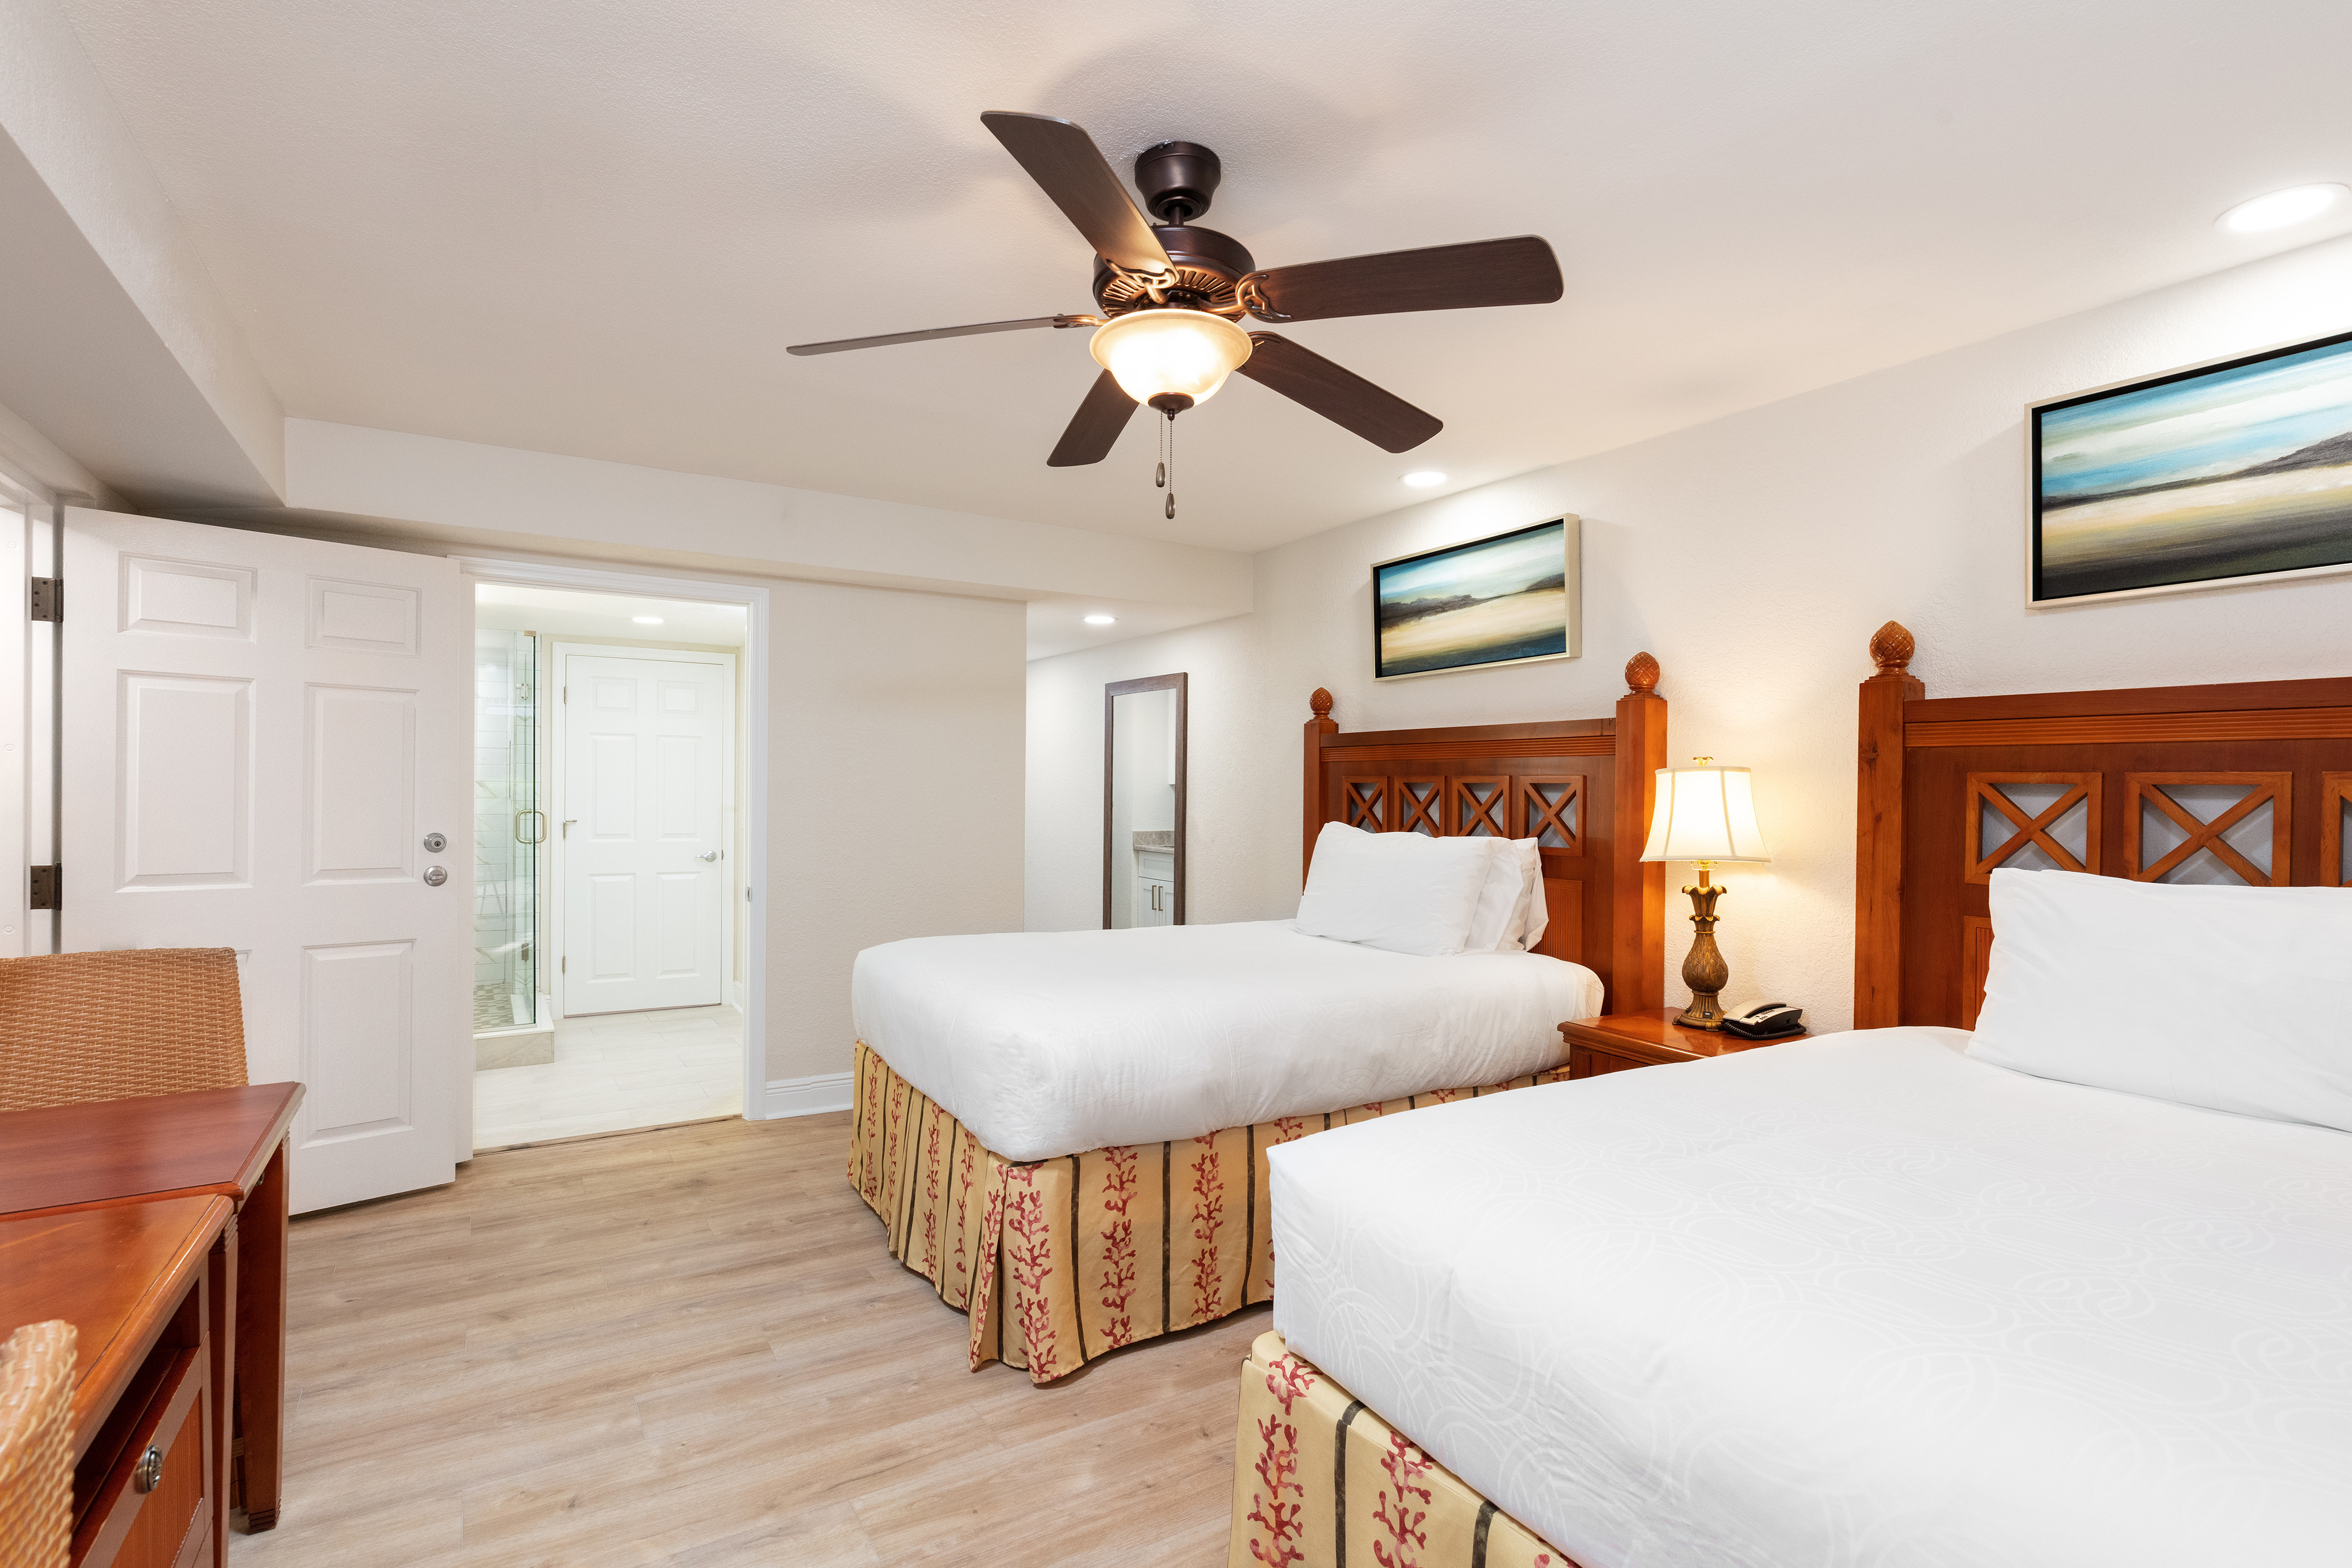 Studio Villa Suites at our Kissimmee hotel near Disney's Blizzard Beach and Hollywood Studios